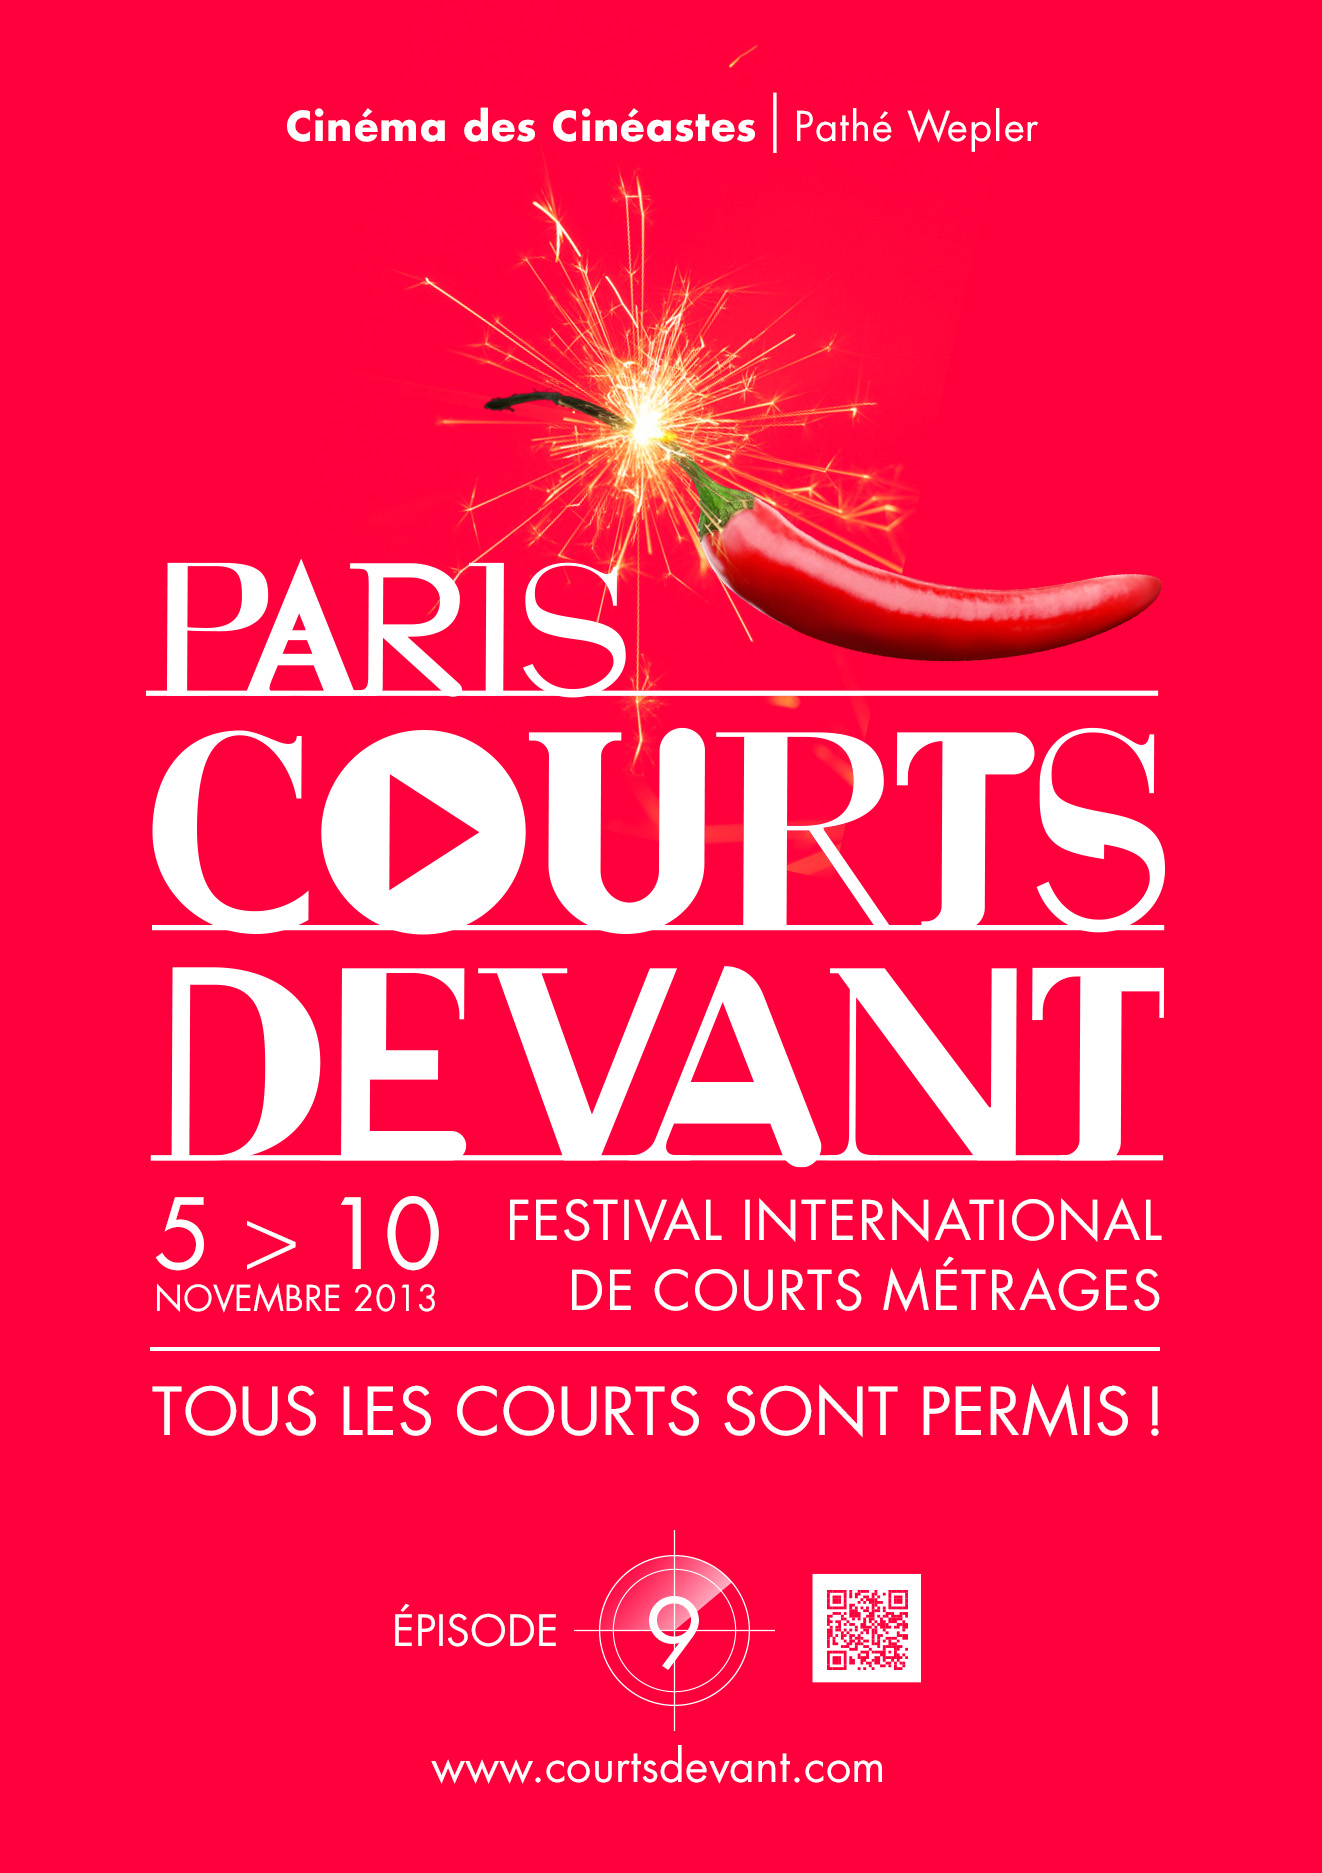 Paris Courts Devant 2013